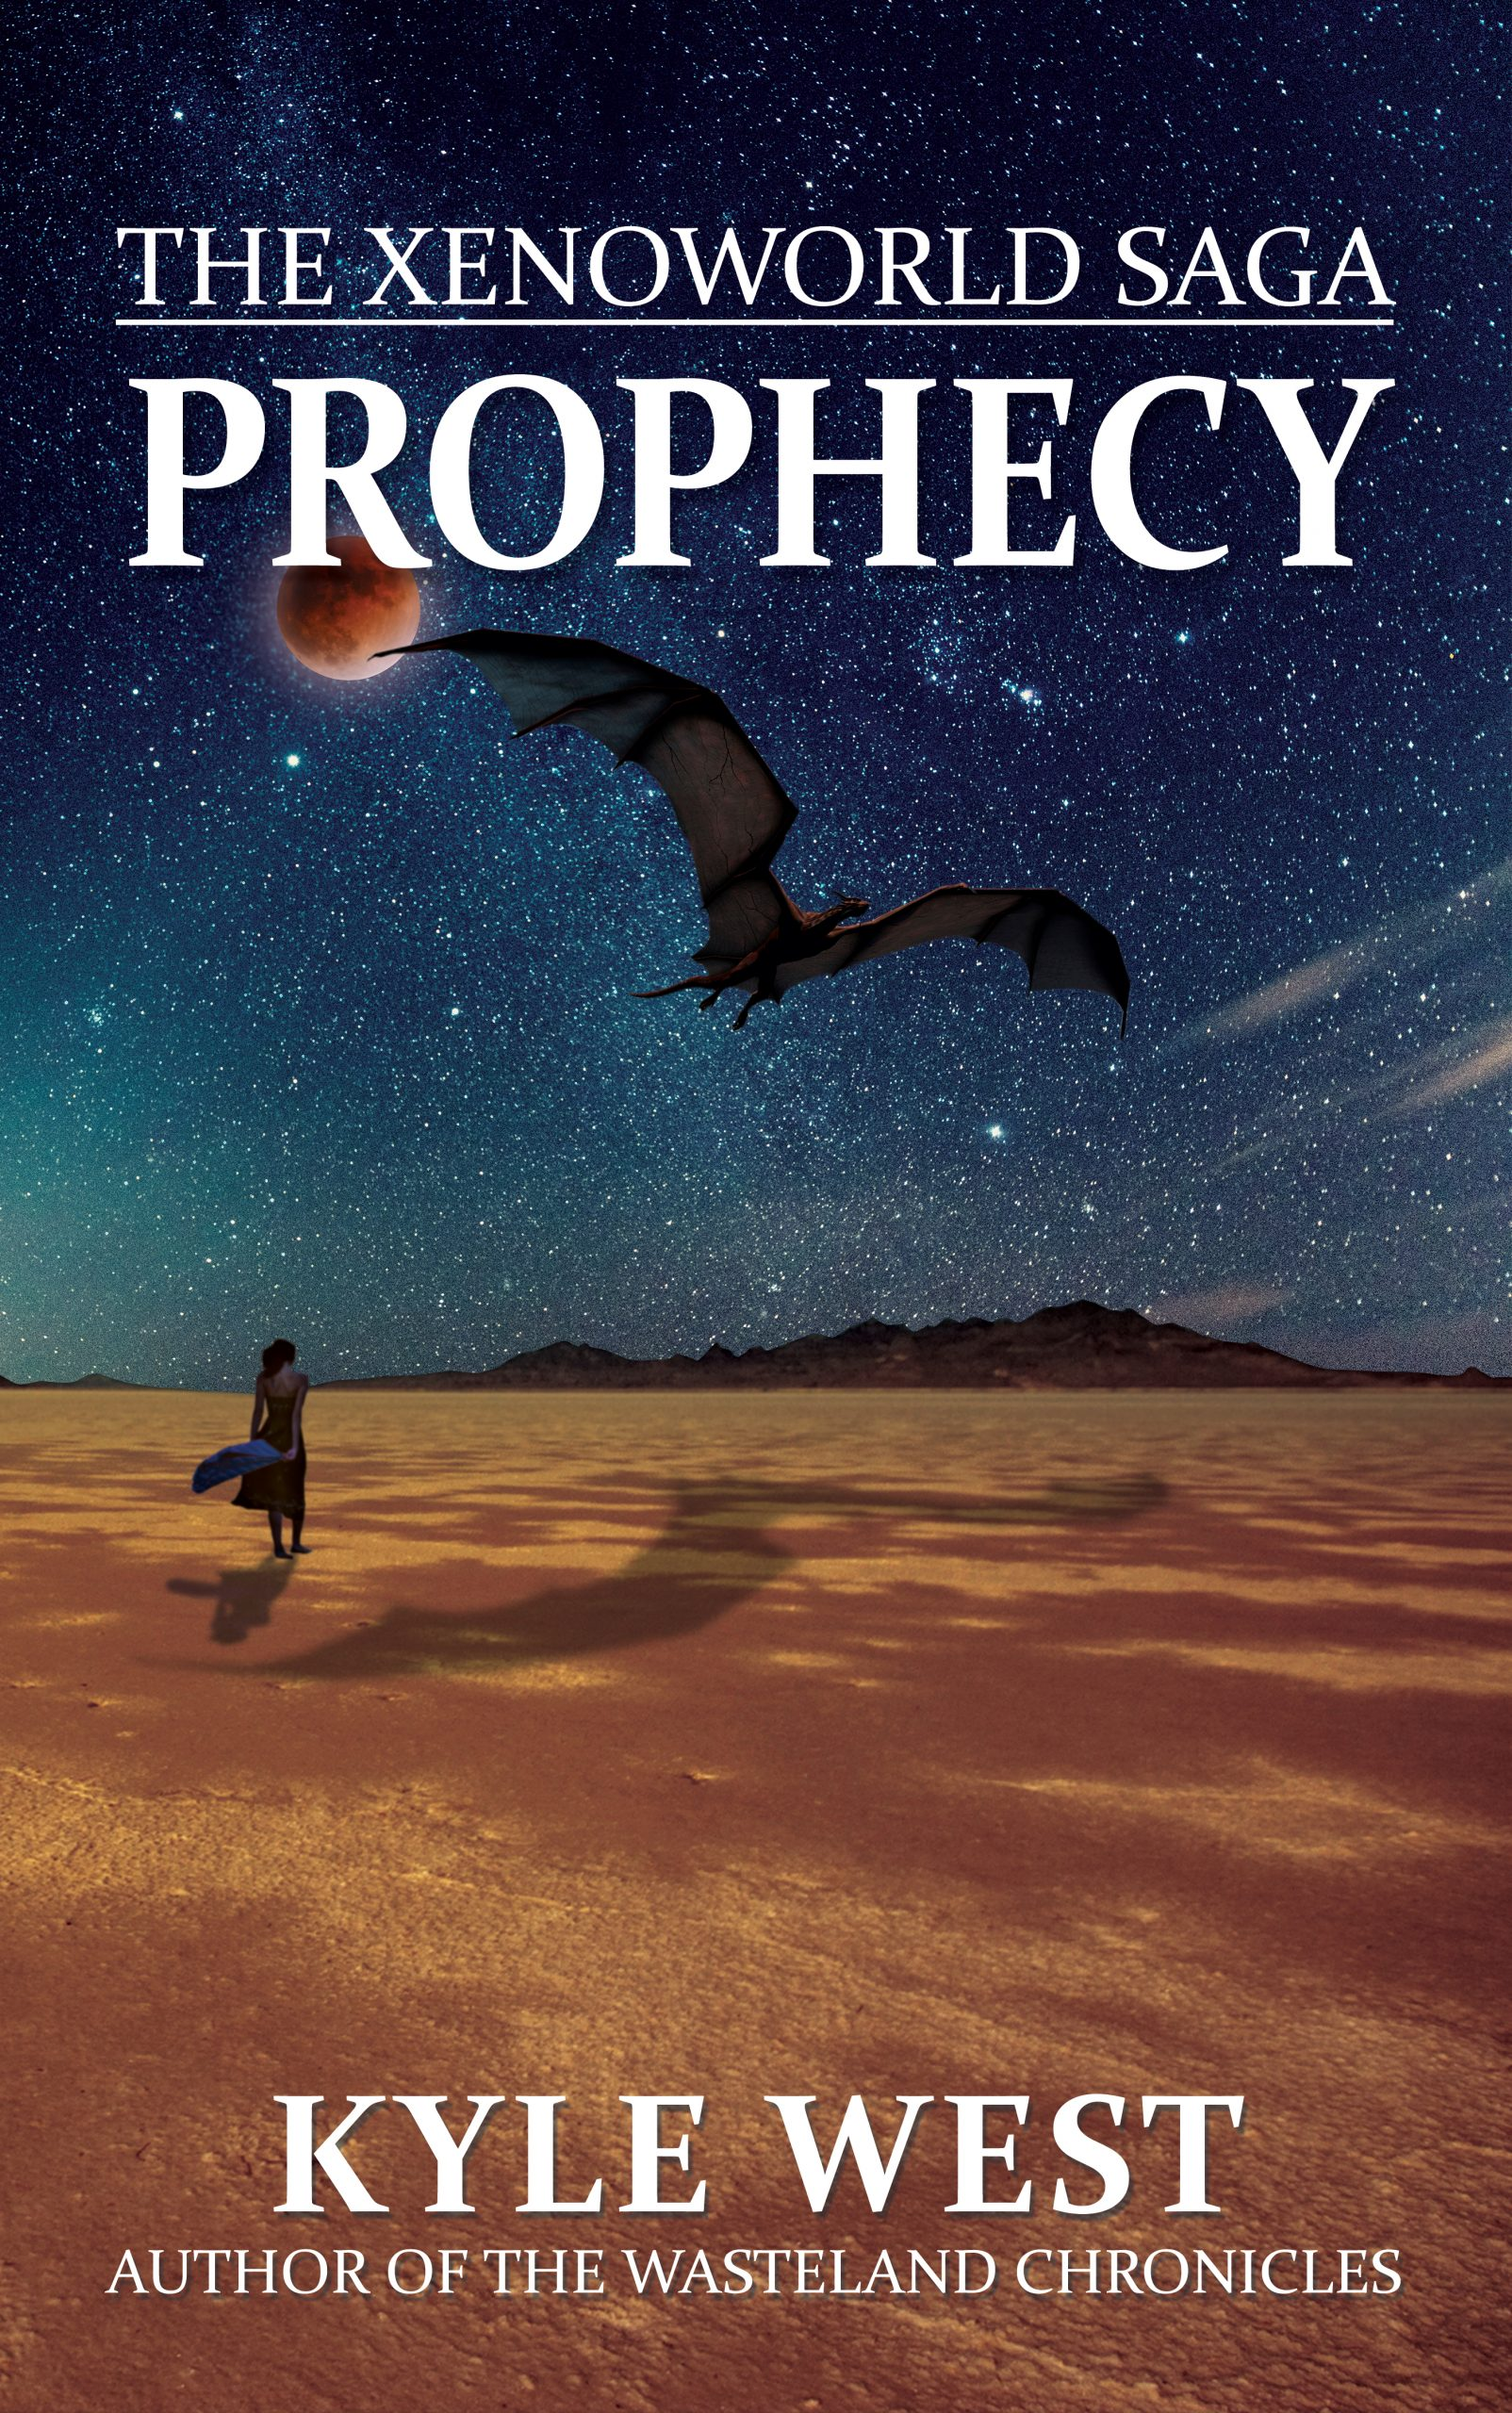 How did I not post this yet!? The new cover for Prophecy!